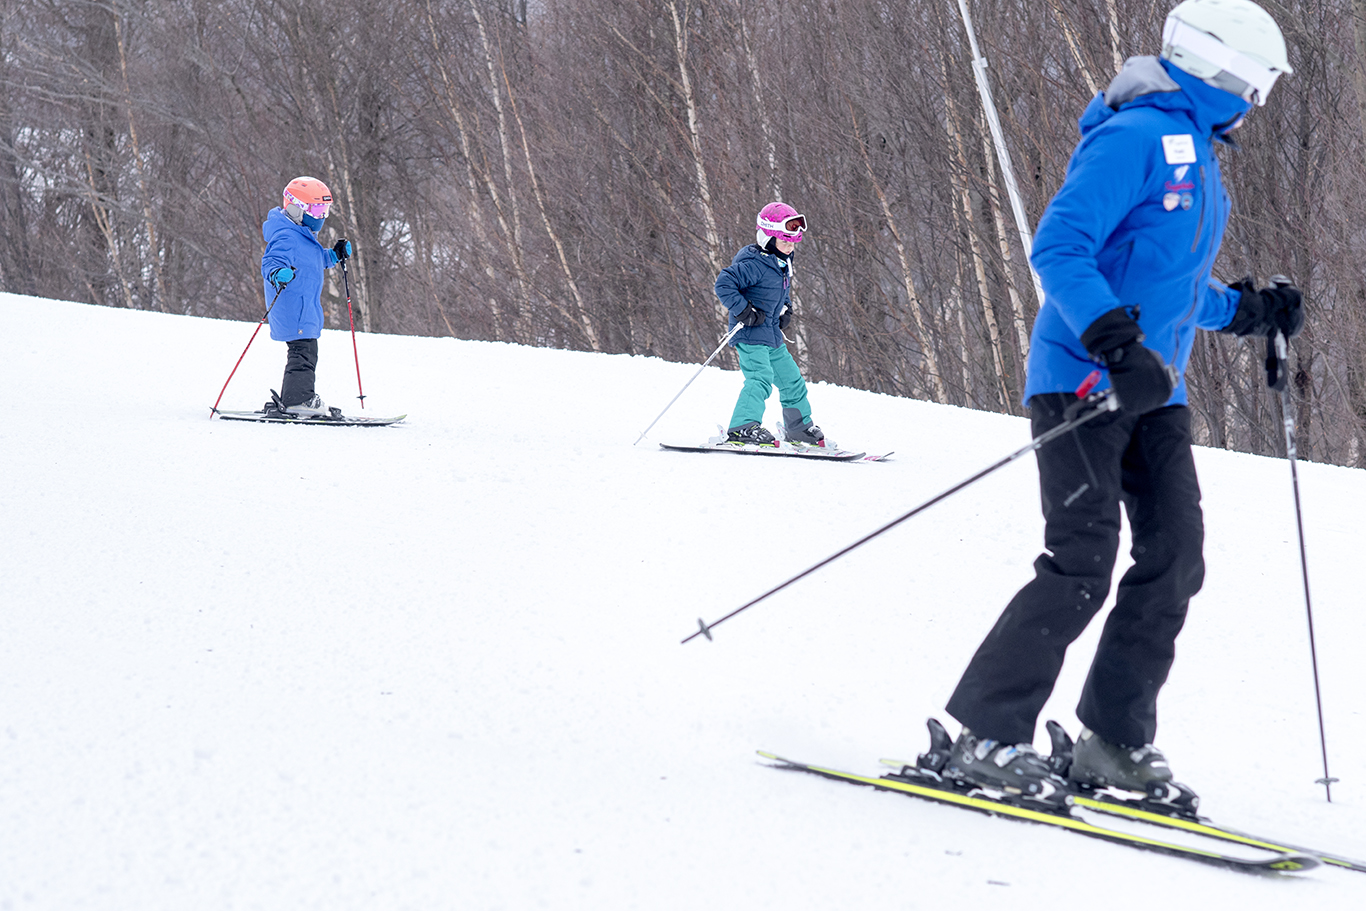 A 7-Year-Old Discovers Her Potential at Sugarbush